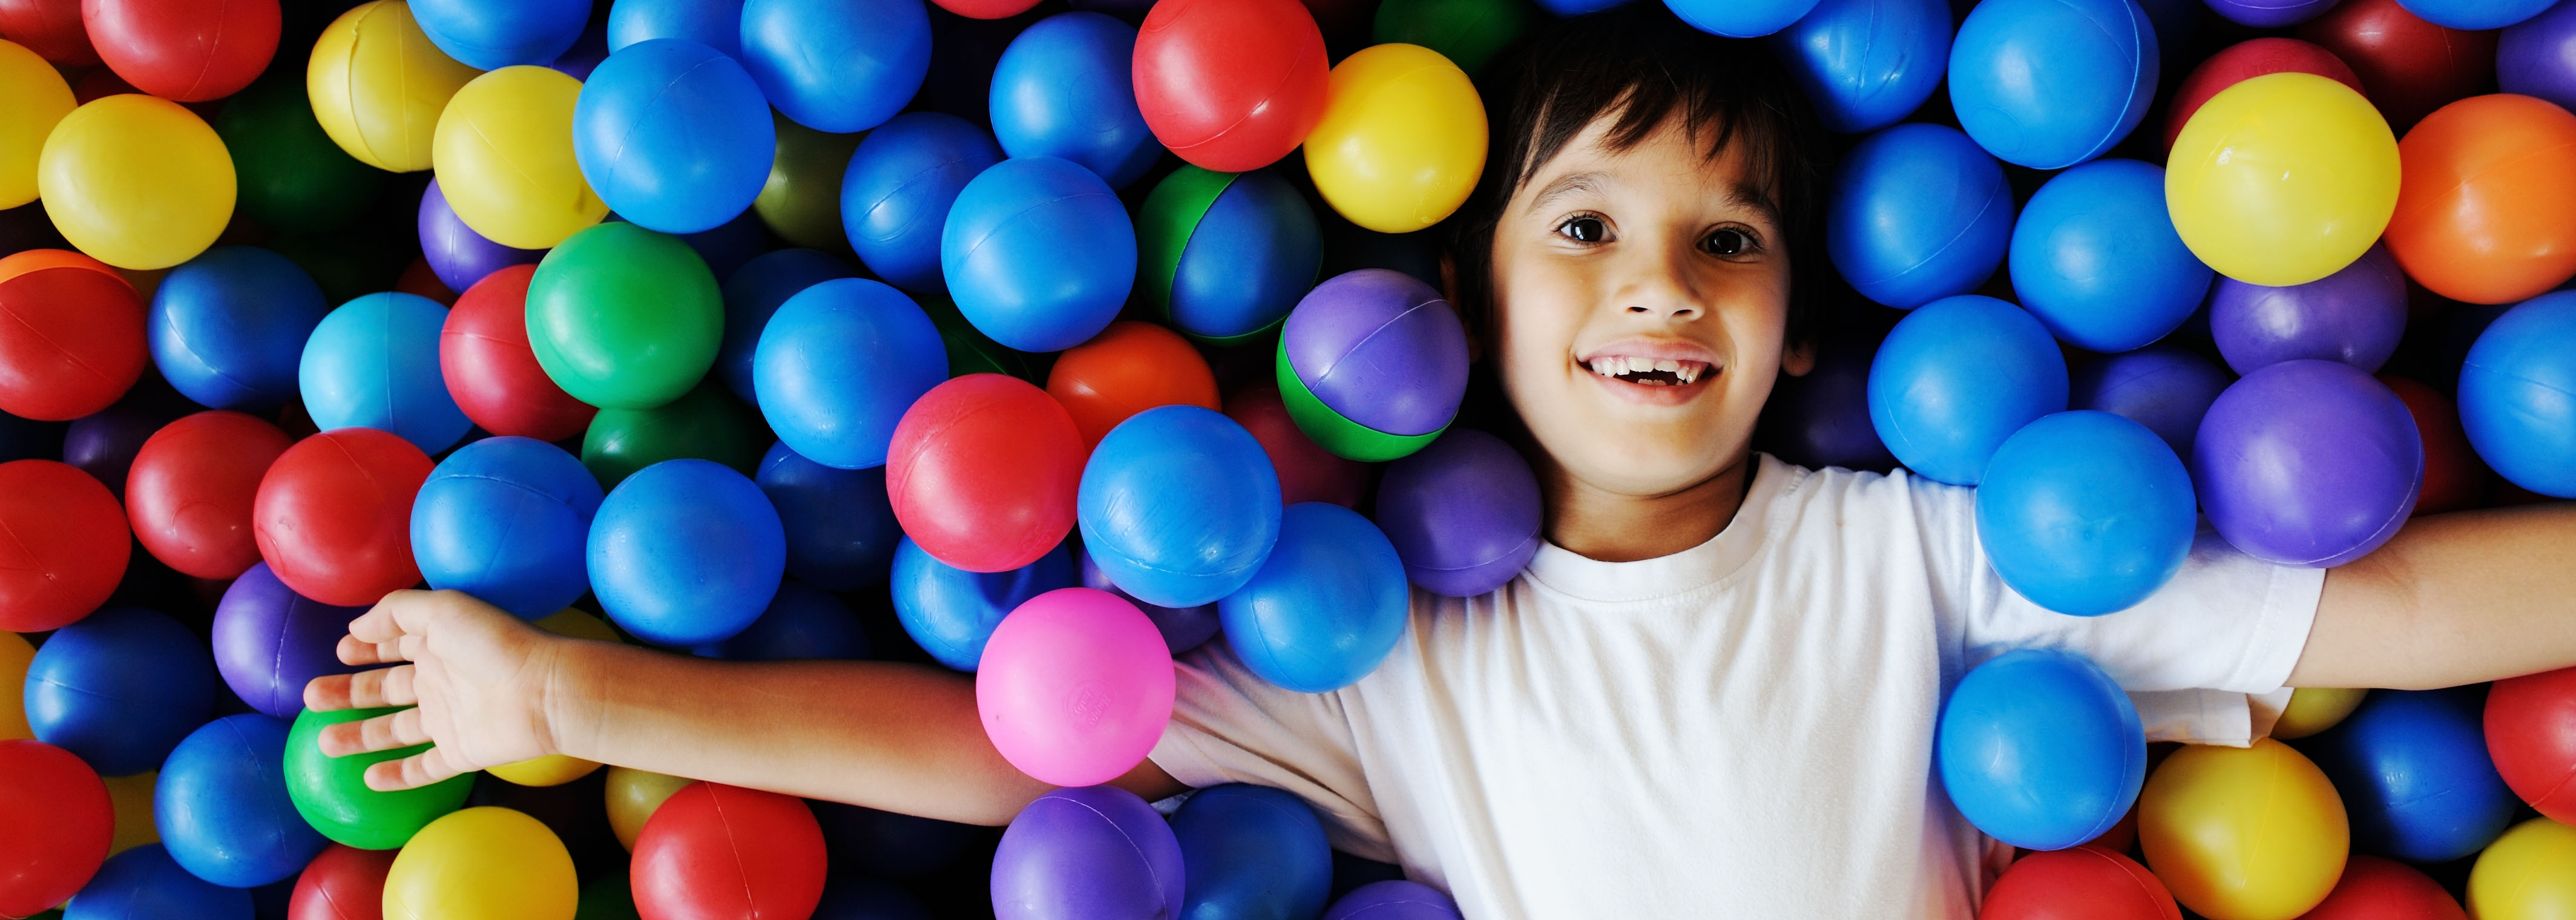 Kids Playcentre and Restaurant Business Up for Immediate Sale in Hyderabad